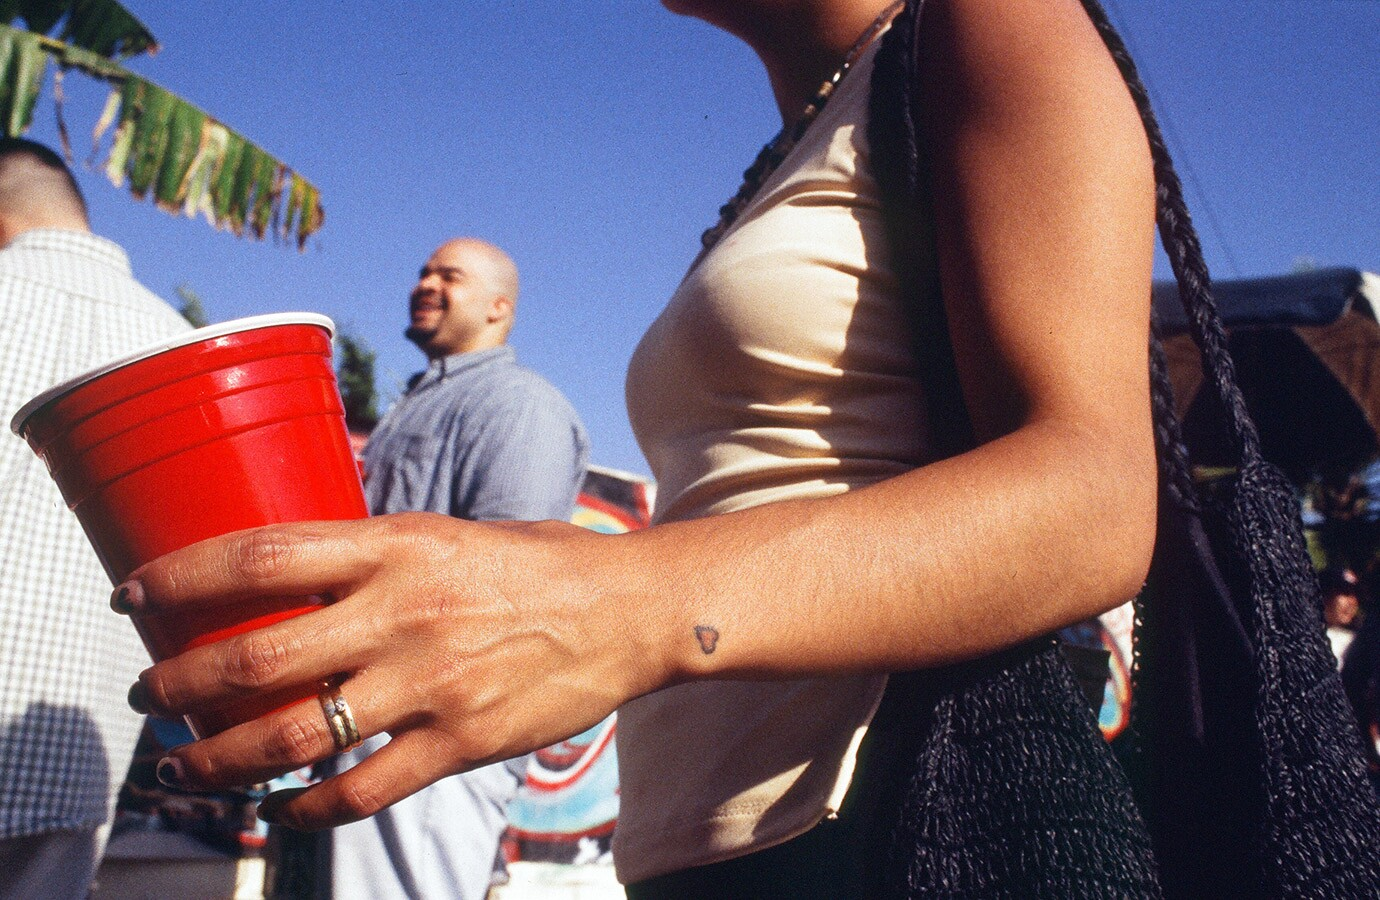 Red cup at a party